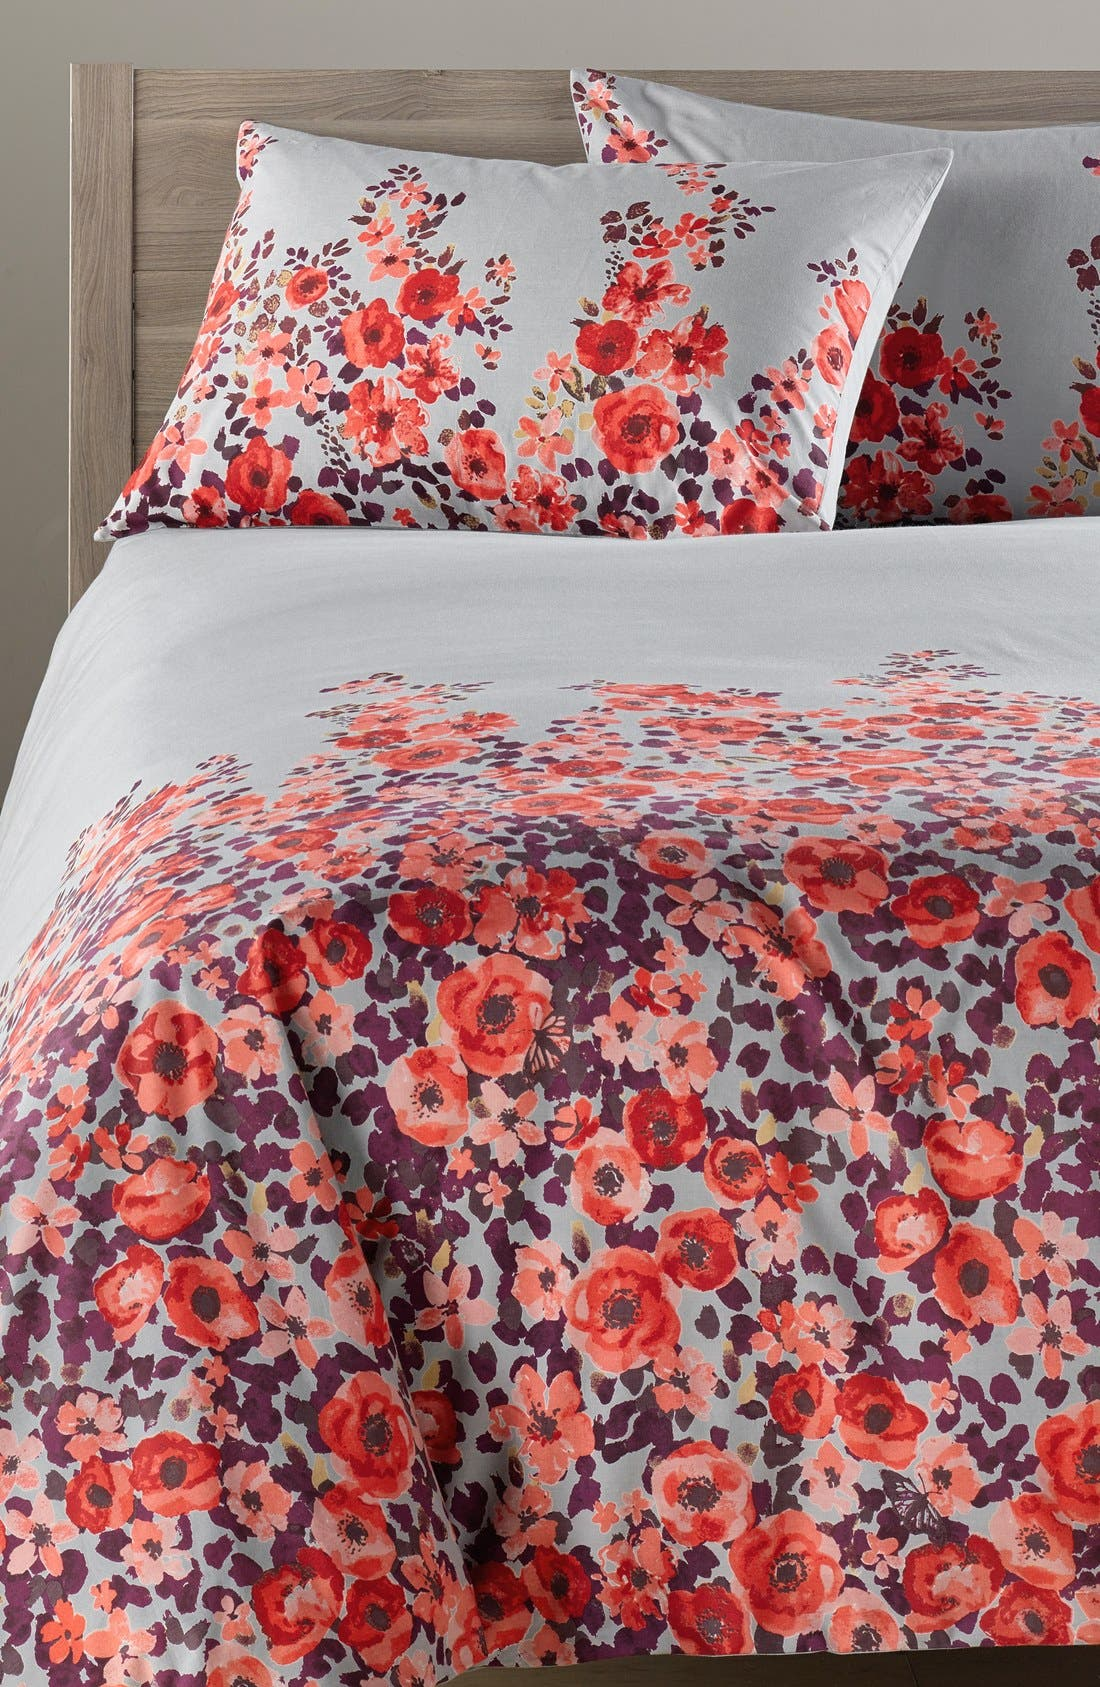 Alternate Image 1 Selected - Nordstrom at Home 'Wallflowers' Duvet Cover